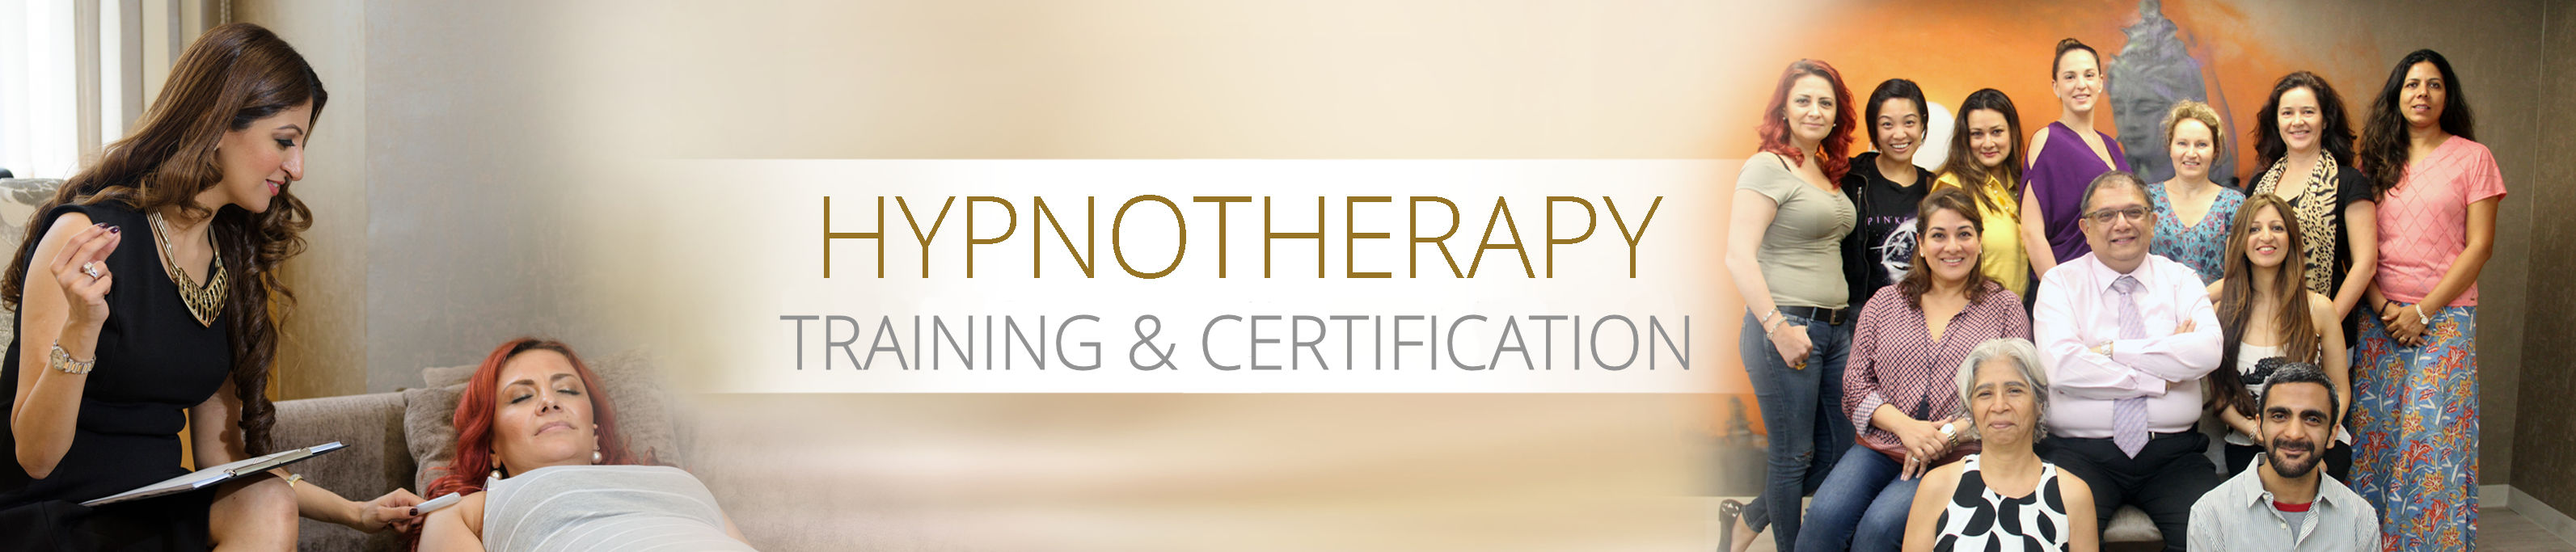 Hypnotherapy Hong Kong Become A Therapist Certified Hypnotherapist